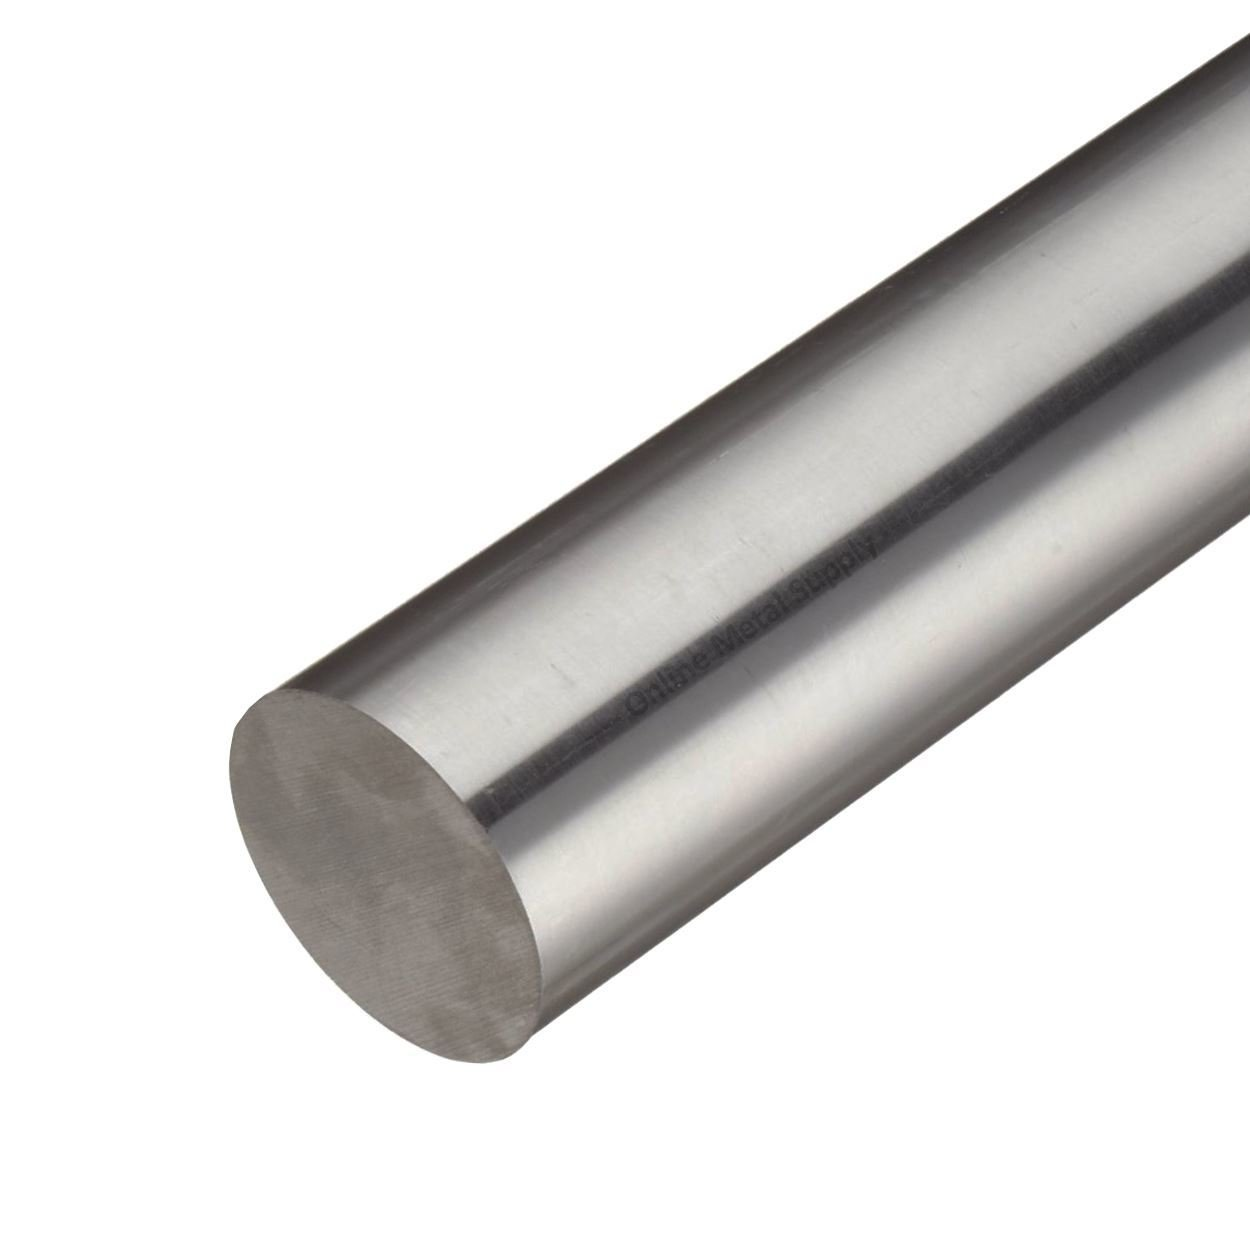 Online Metal Supply 416 TGP Stainless Steel Round Rod x 12 inches 0.669 17mm